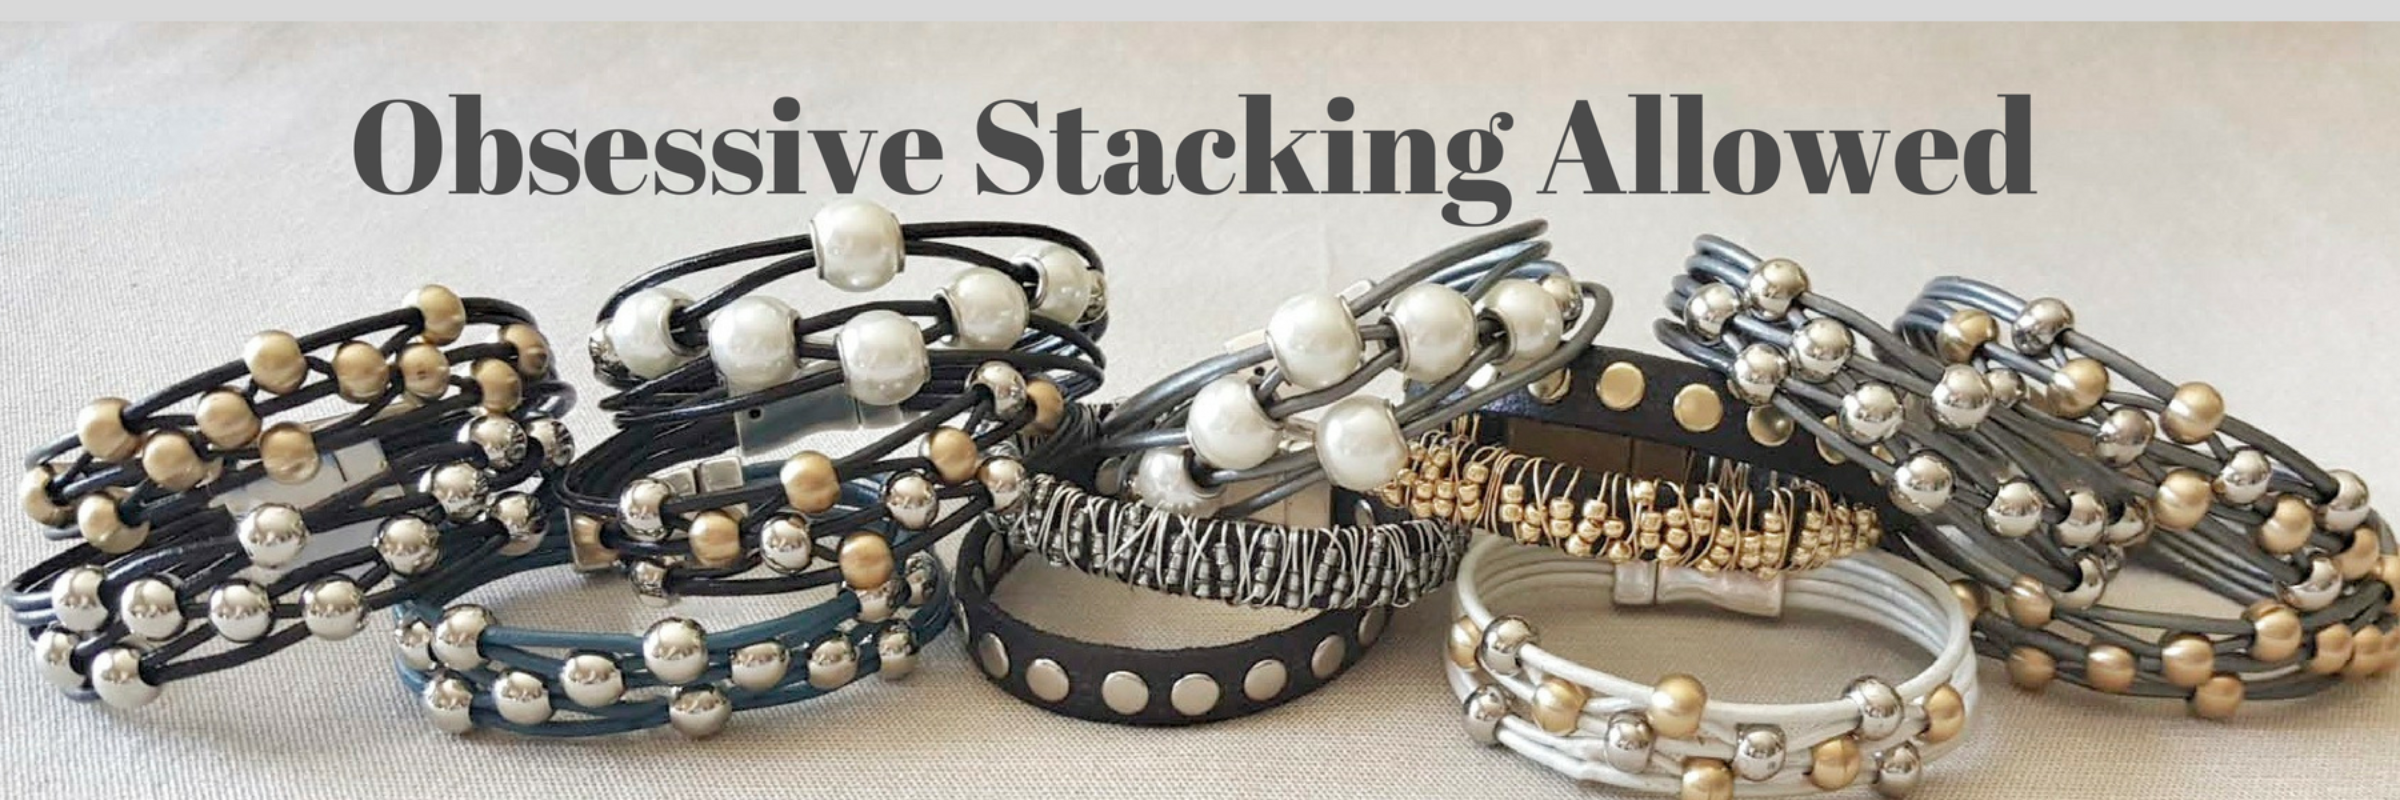 Obsessive Stacking Allowed 3